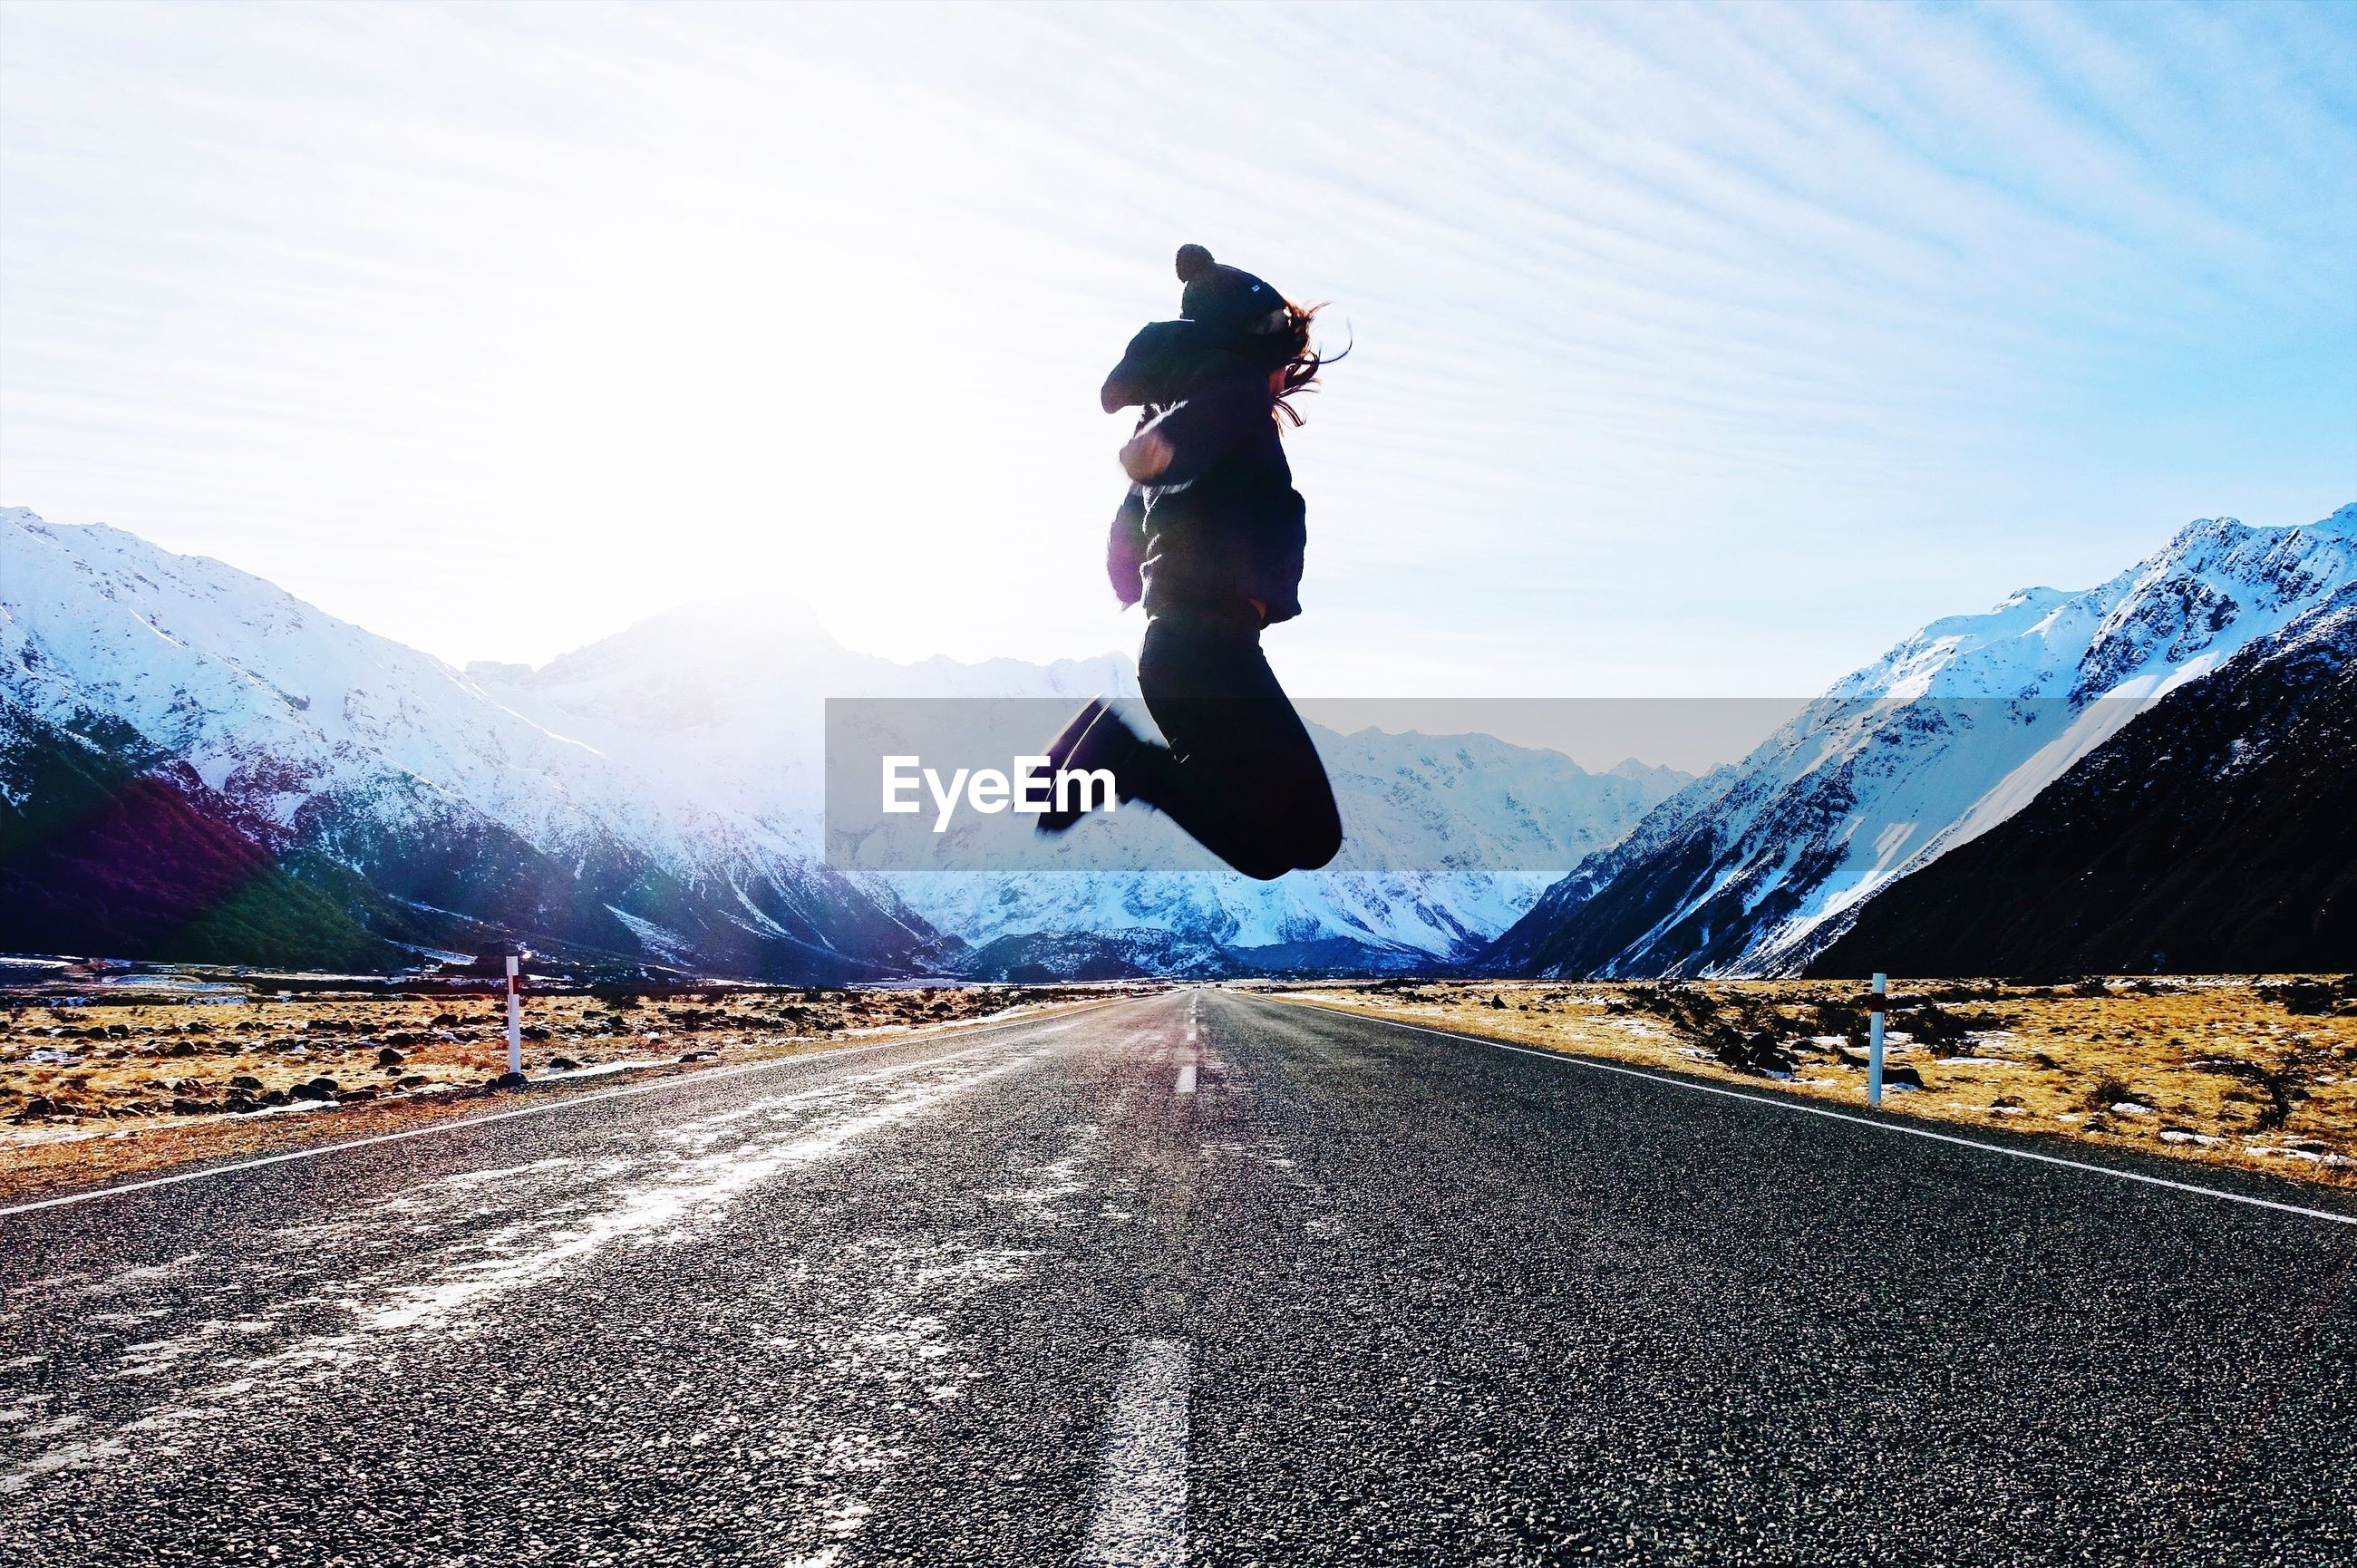 Woman jumping on road against mountain during winter